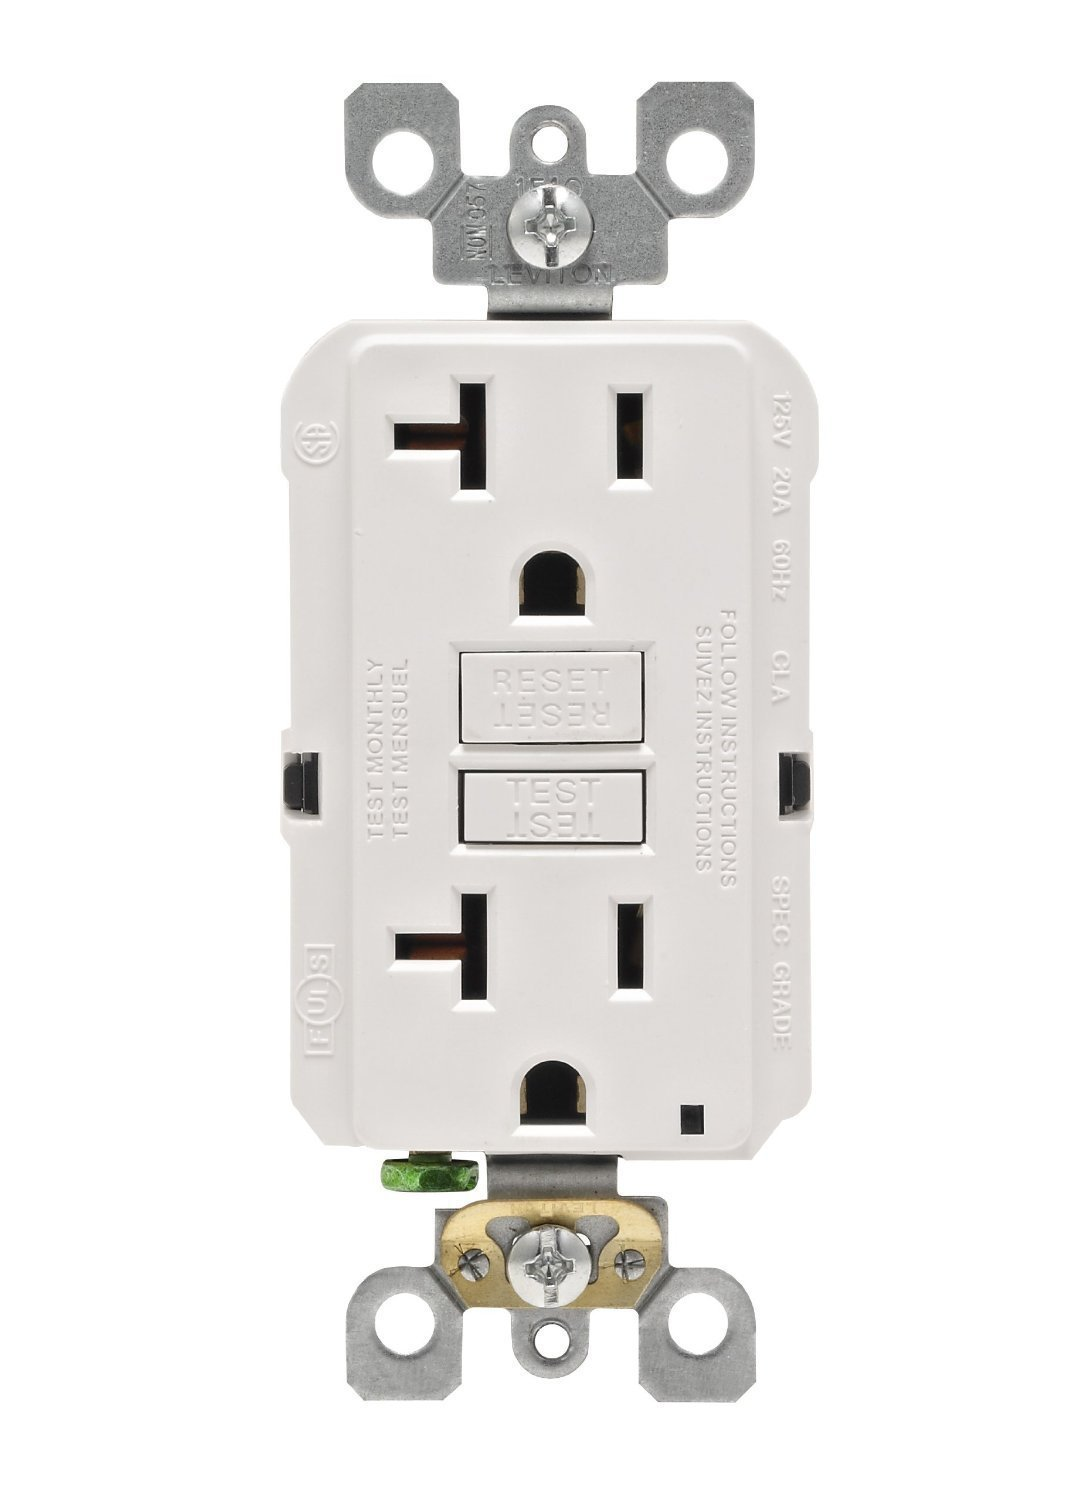 Leviton GFNT2-W Self-Test Smartlockpro Slim GFCI Non-Tamper-Resistant Receptacle with LED Indicator, 20-Amp, 10 Pack, White by Leviton